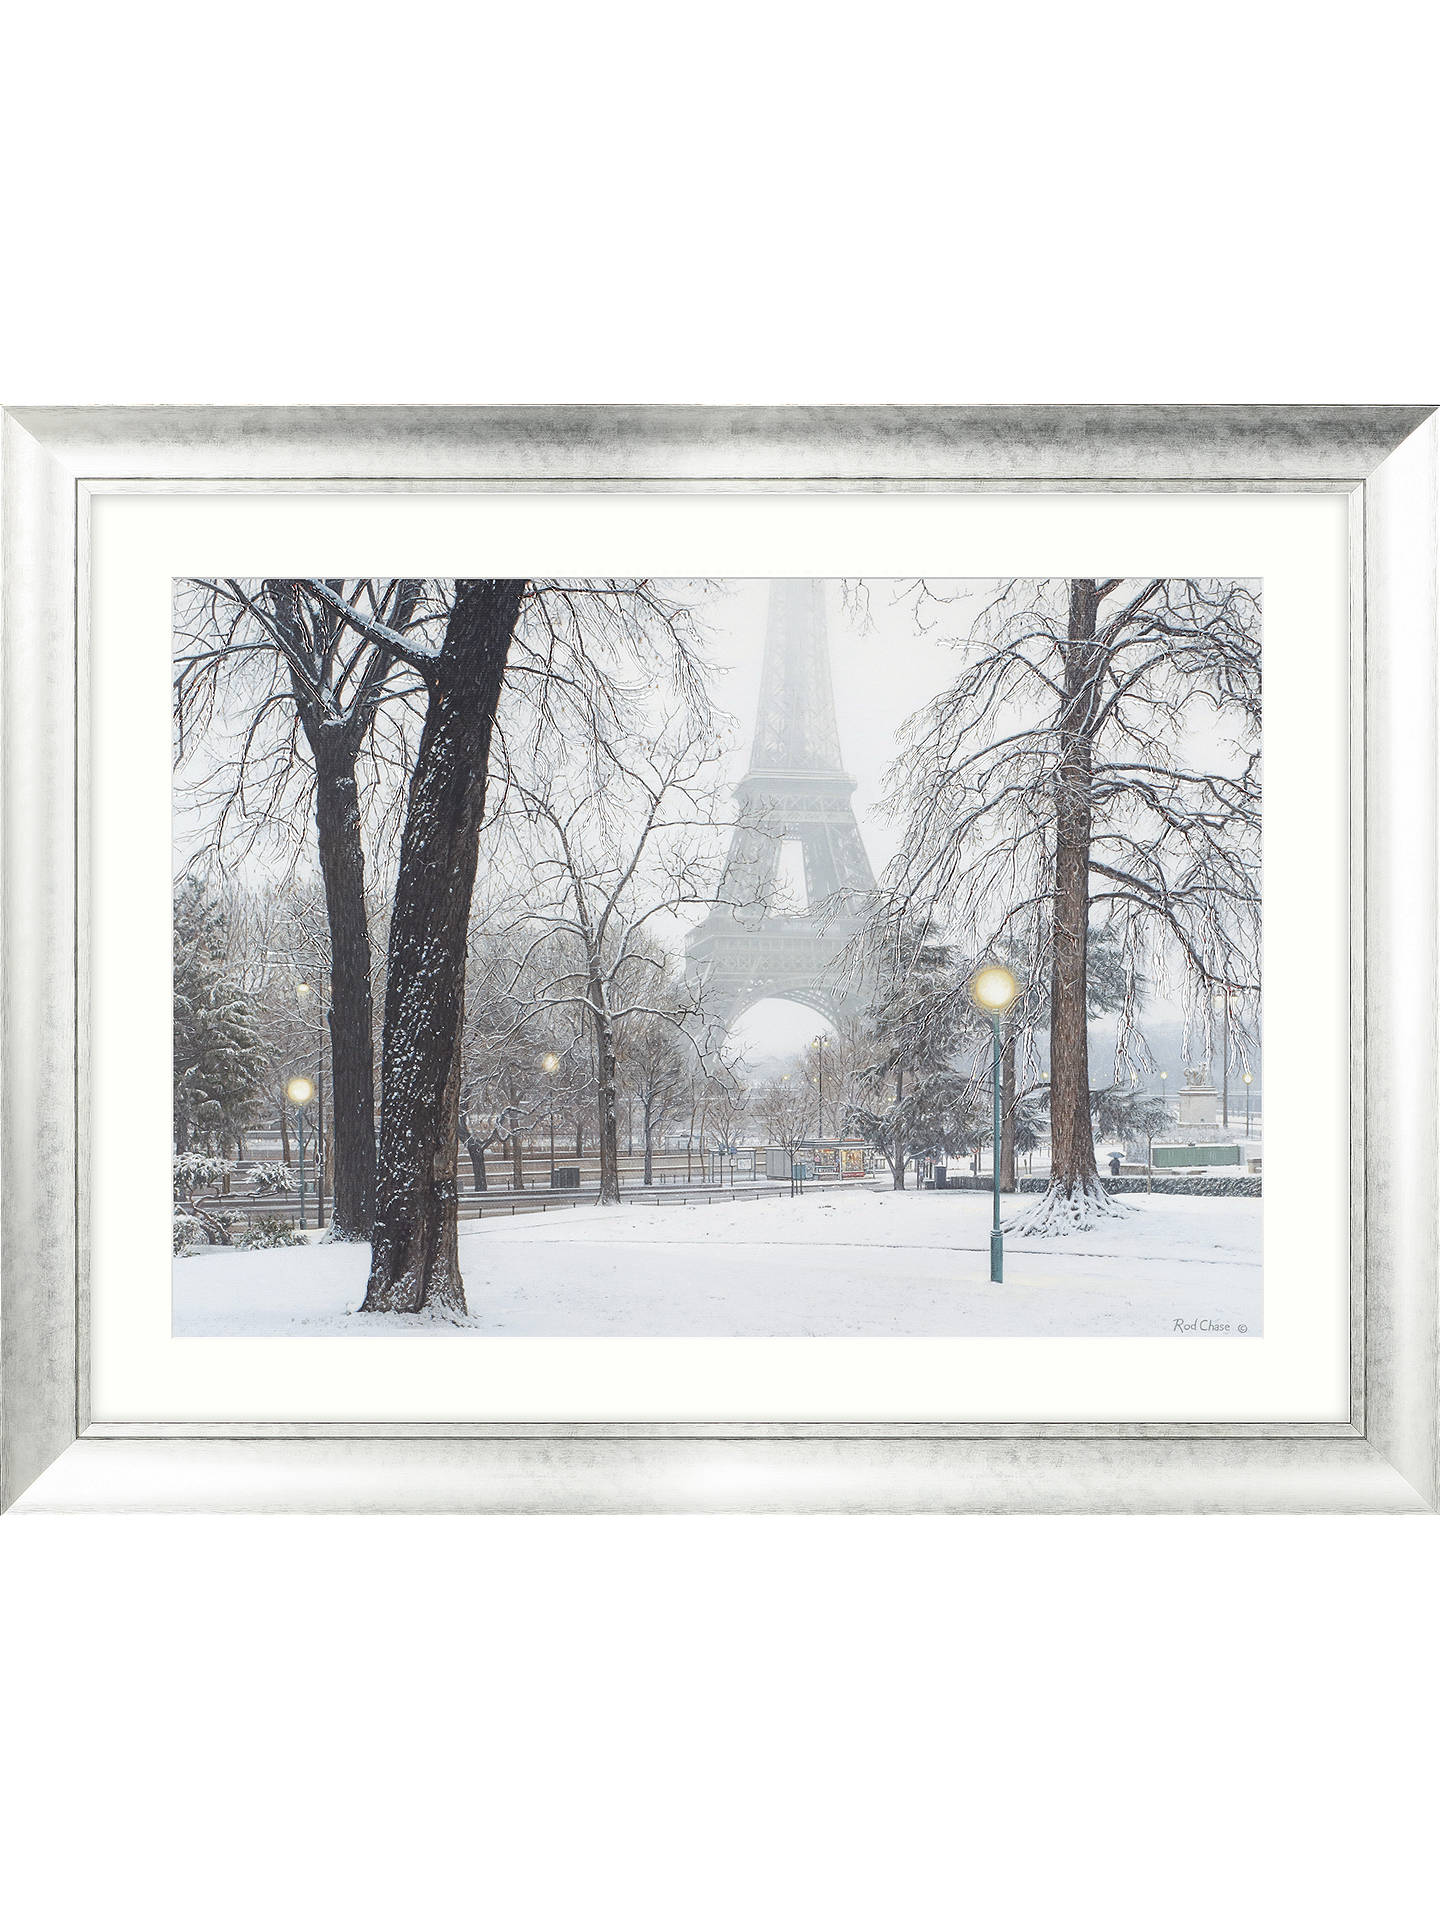 BuyRod Chase - Foggy Day In Paris Framed Print & Mount, 88 x 112cm Online at johnlewis.com